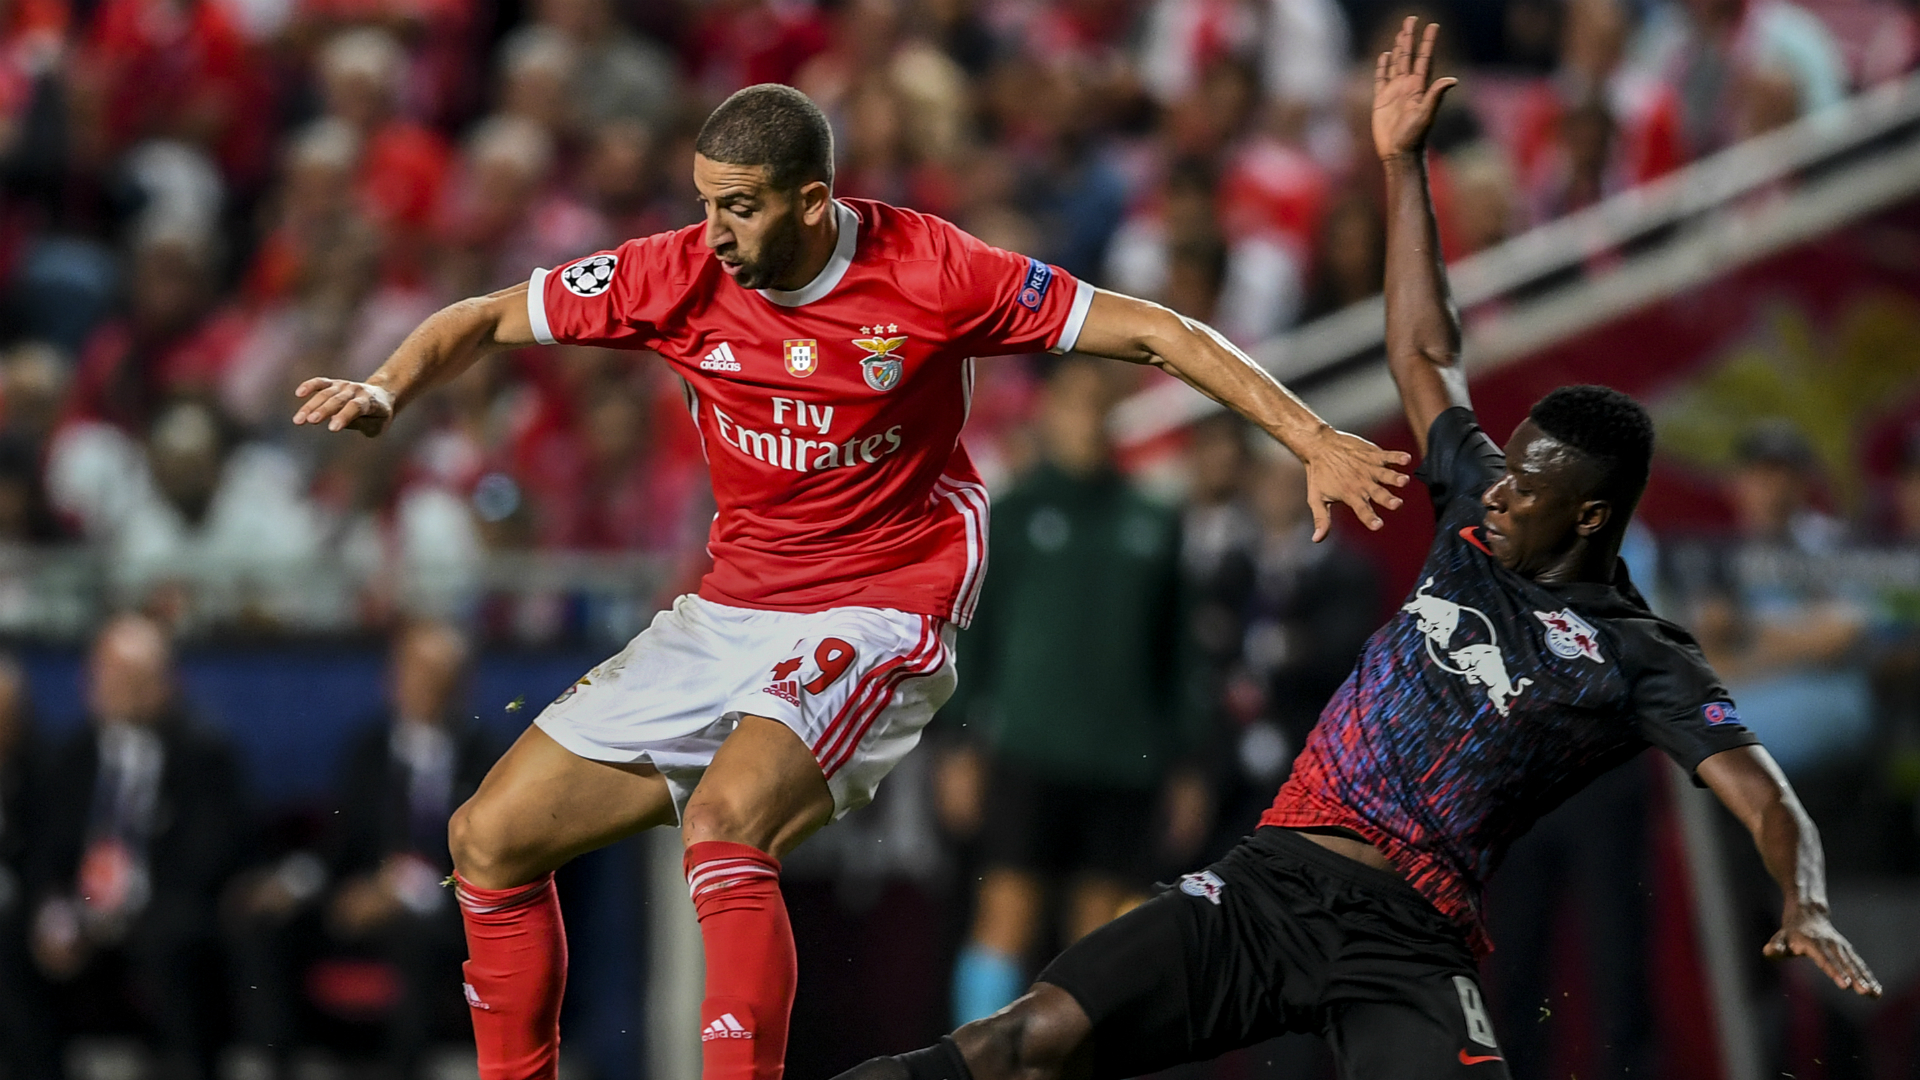 Benfica star Taarabt shifts focus to RB Leipzig's next Champions League game